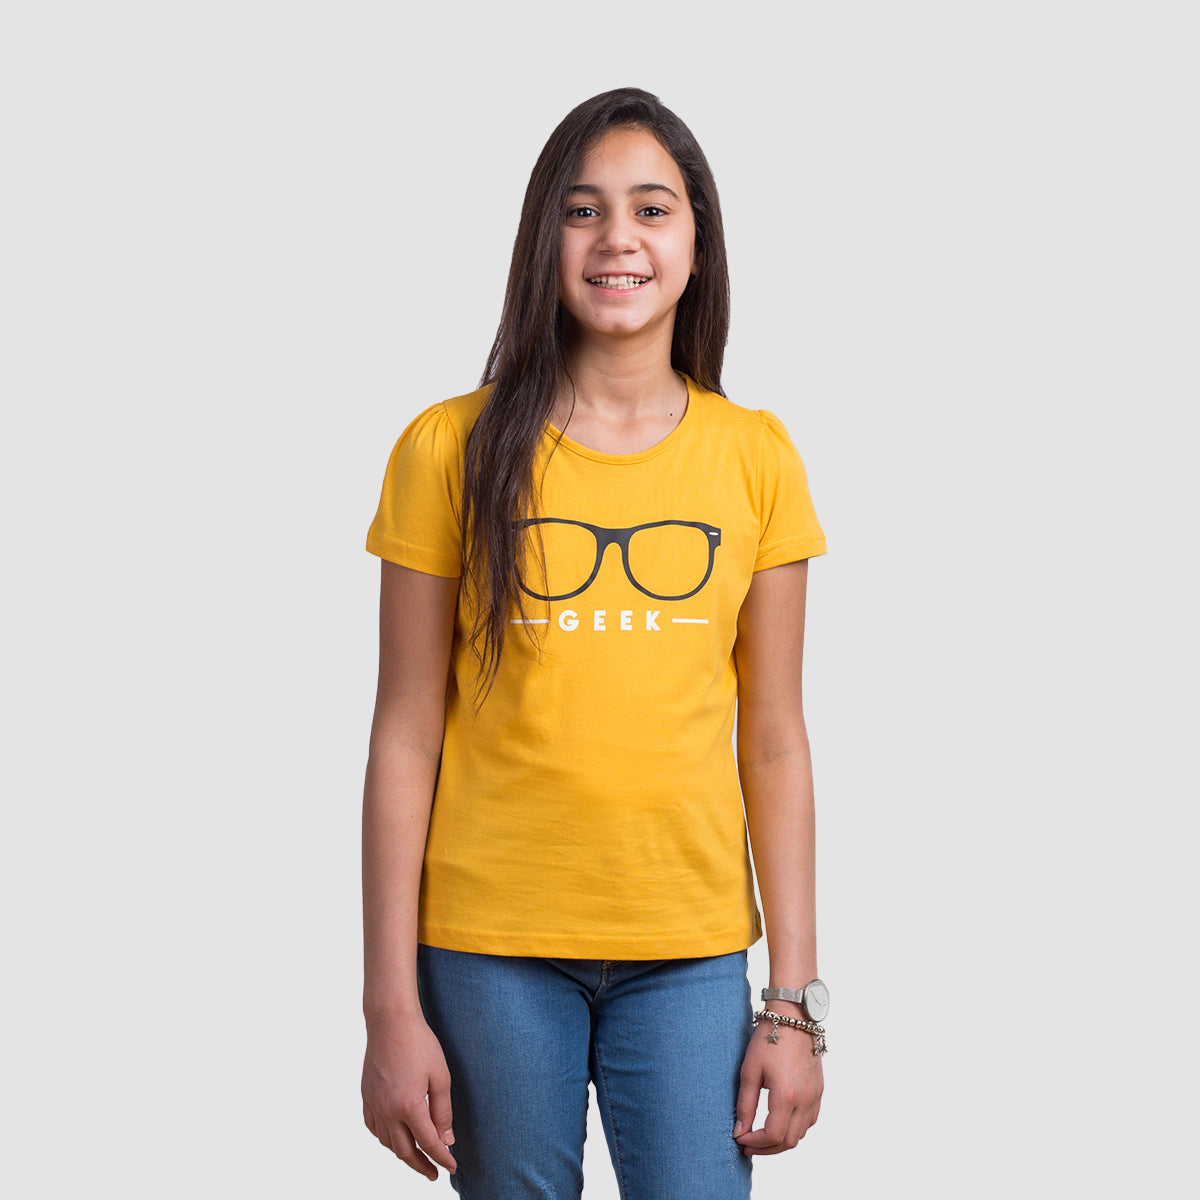 Geek - Yellow